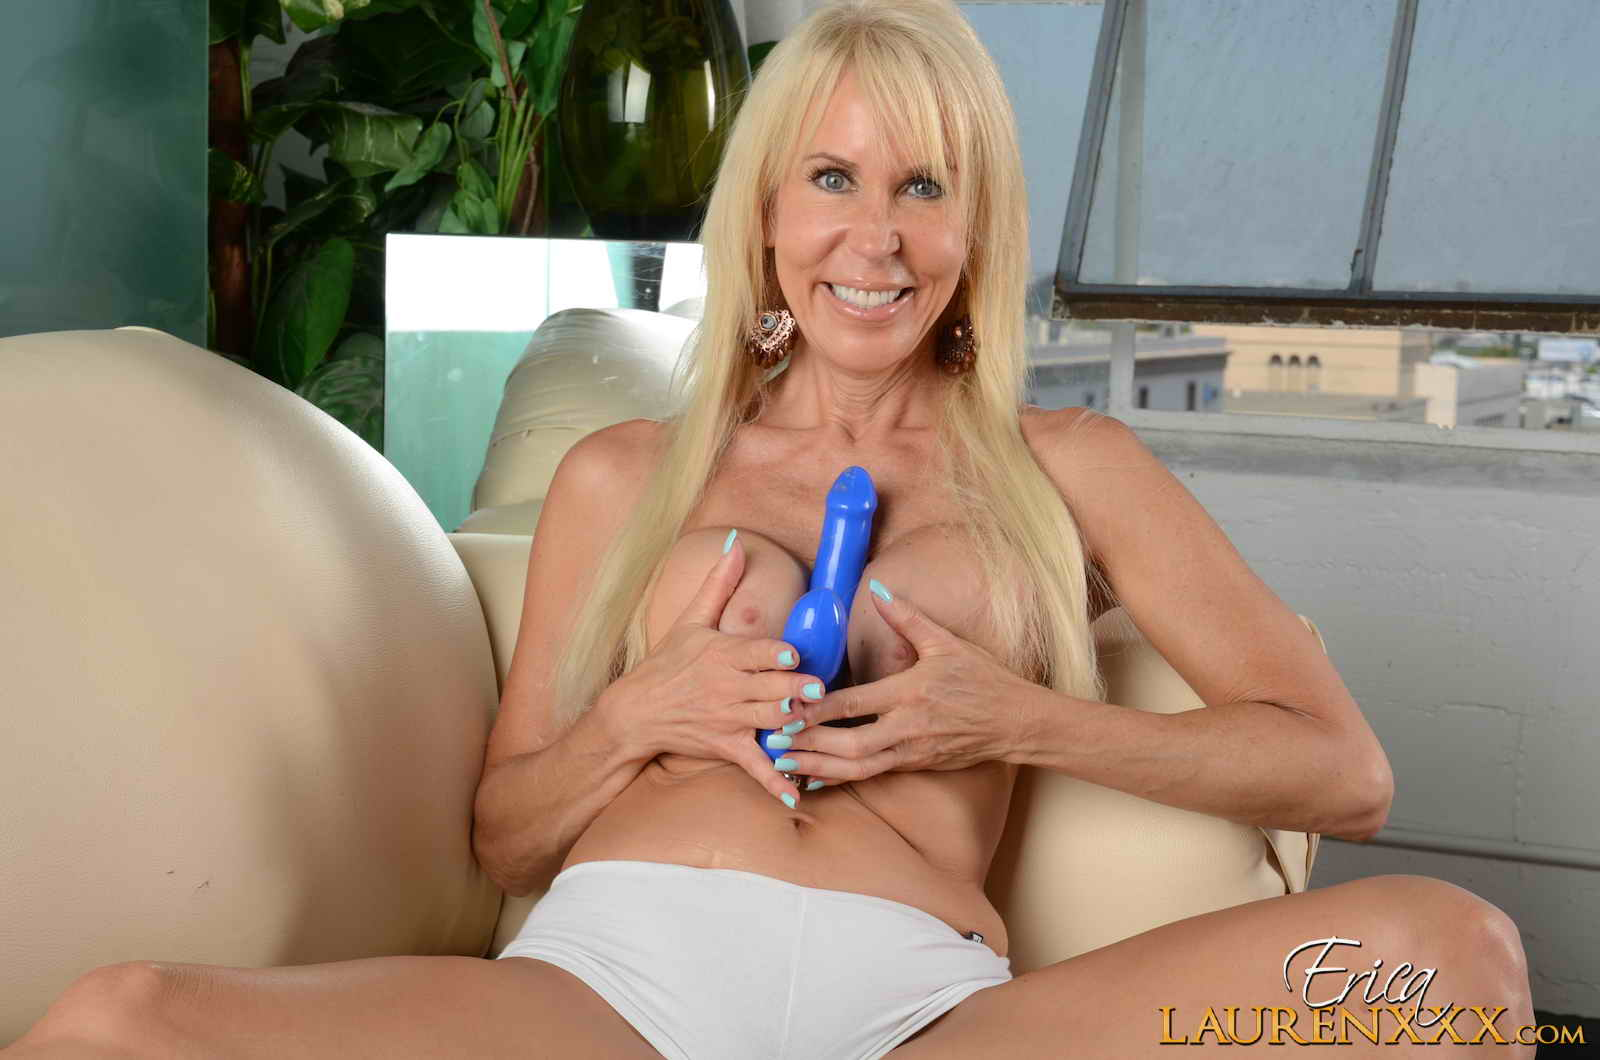 long haired sexy mature blonde erica lauren xxx gets naked and gievs